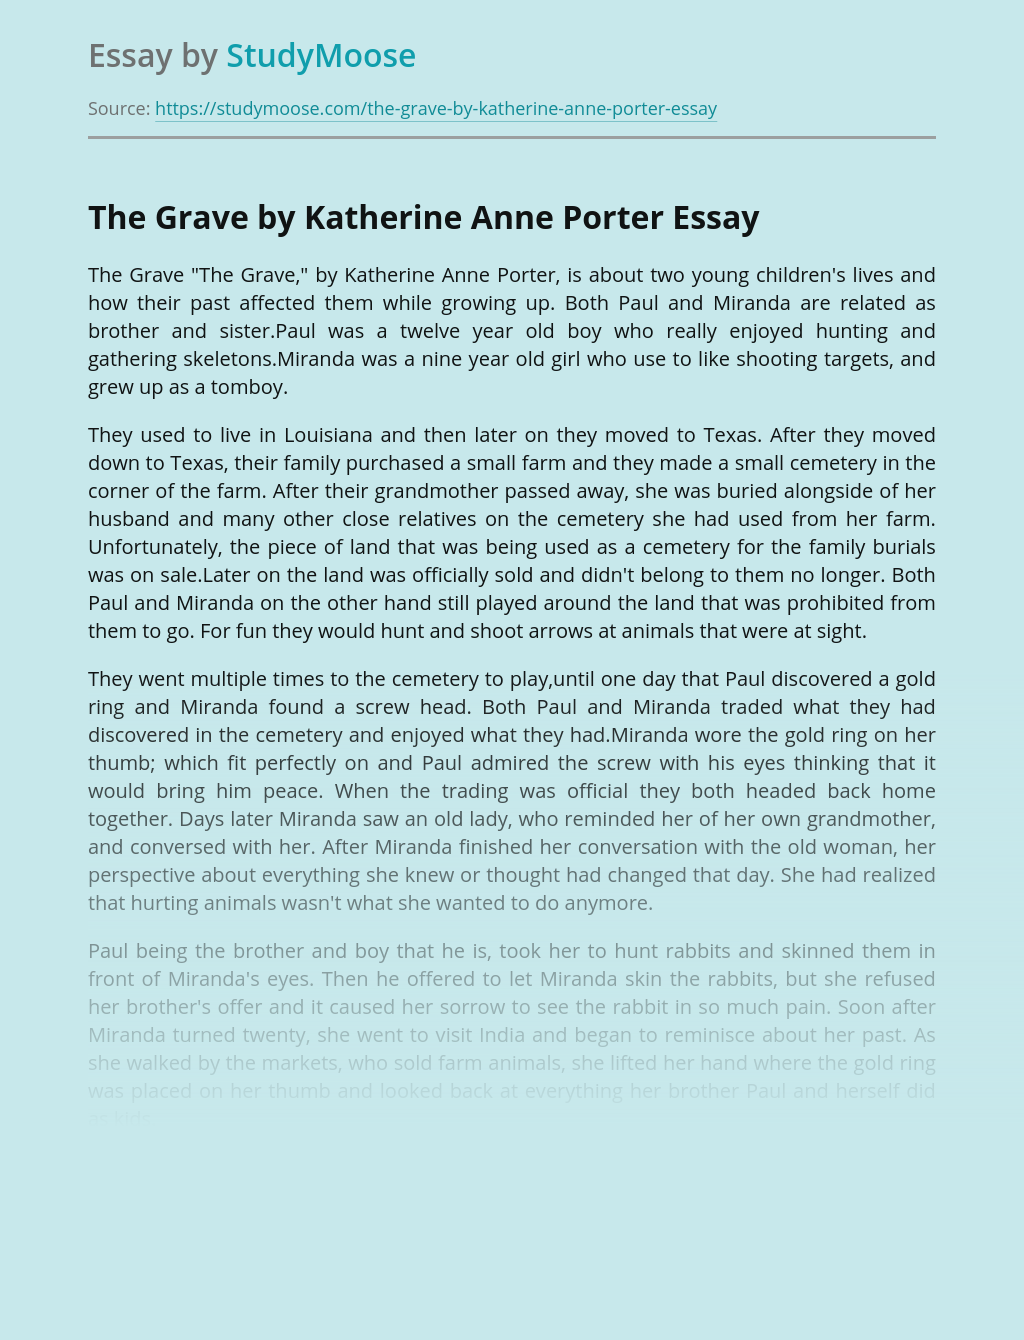 The Grave by Katherine Anne Porter